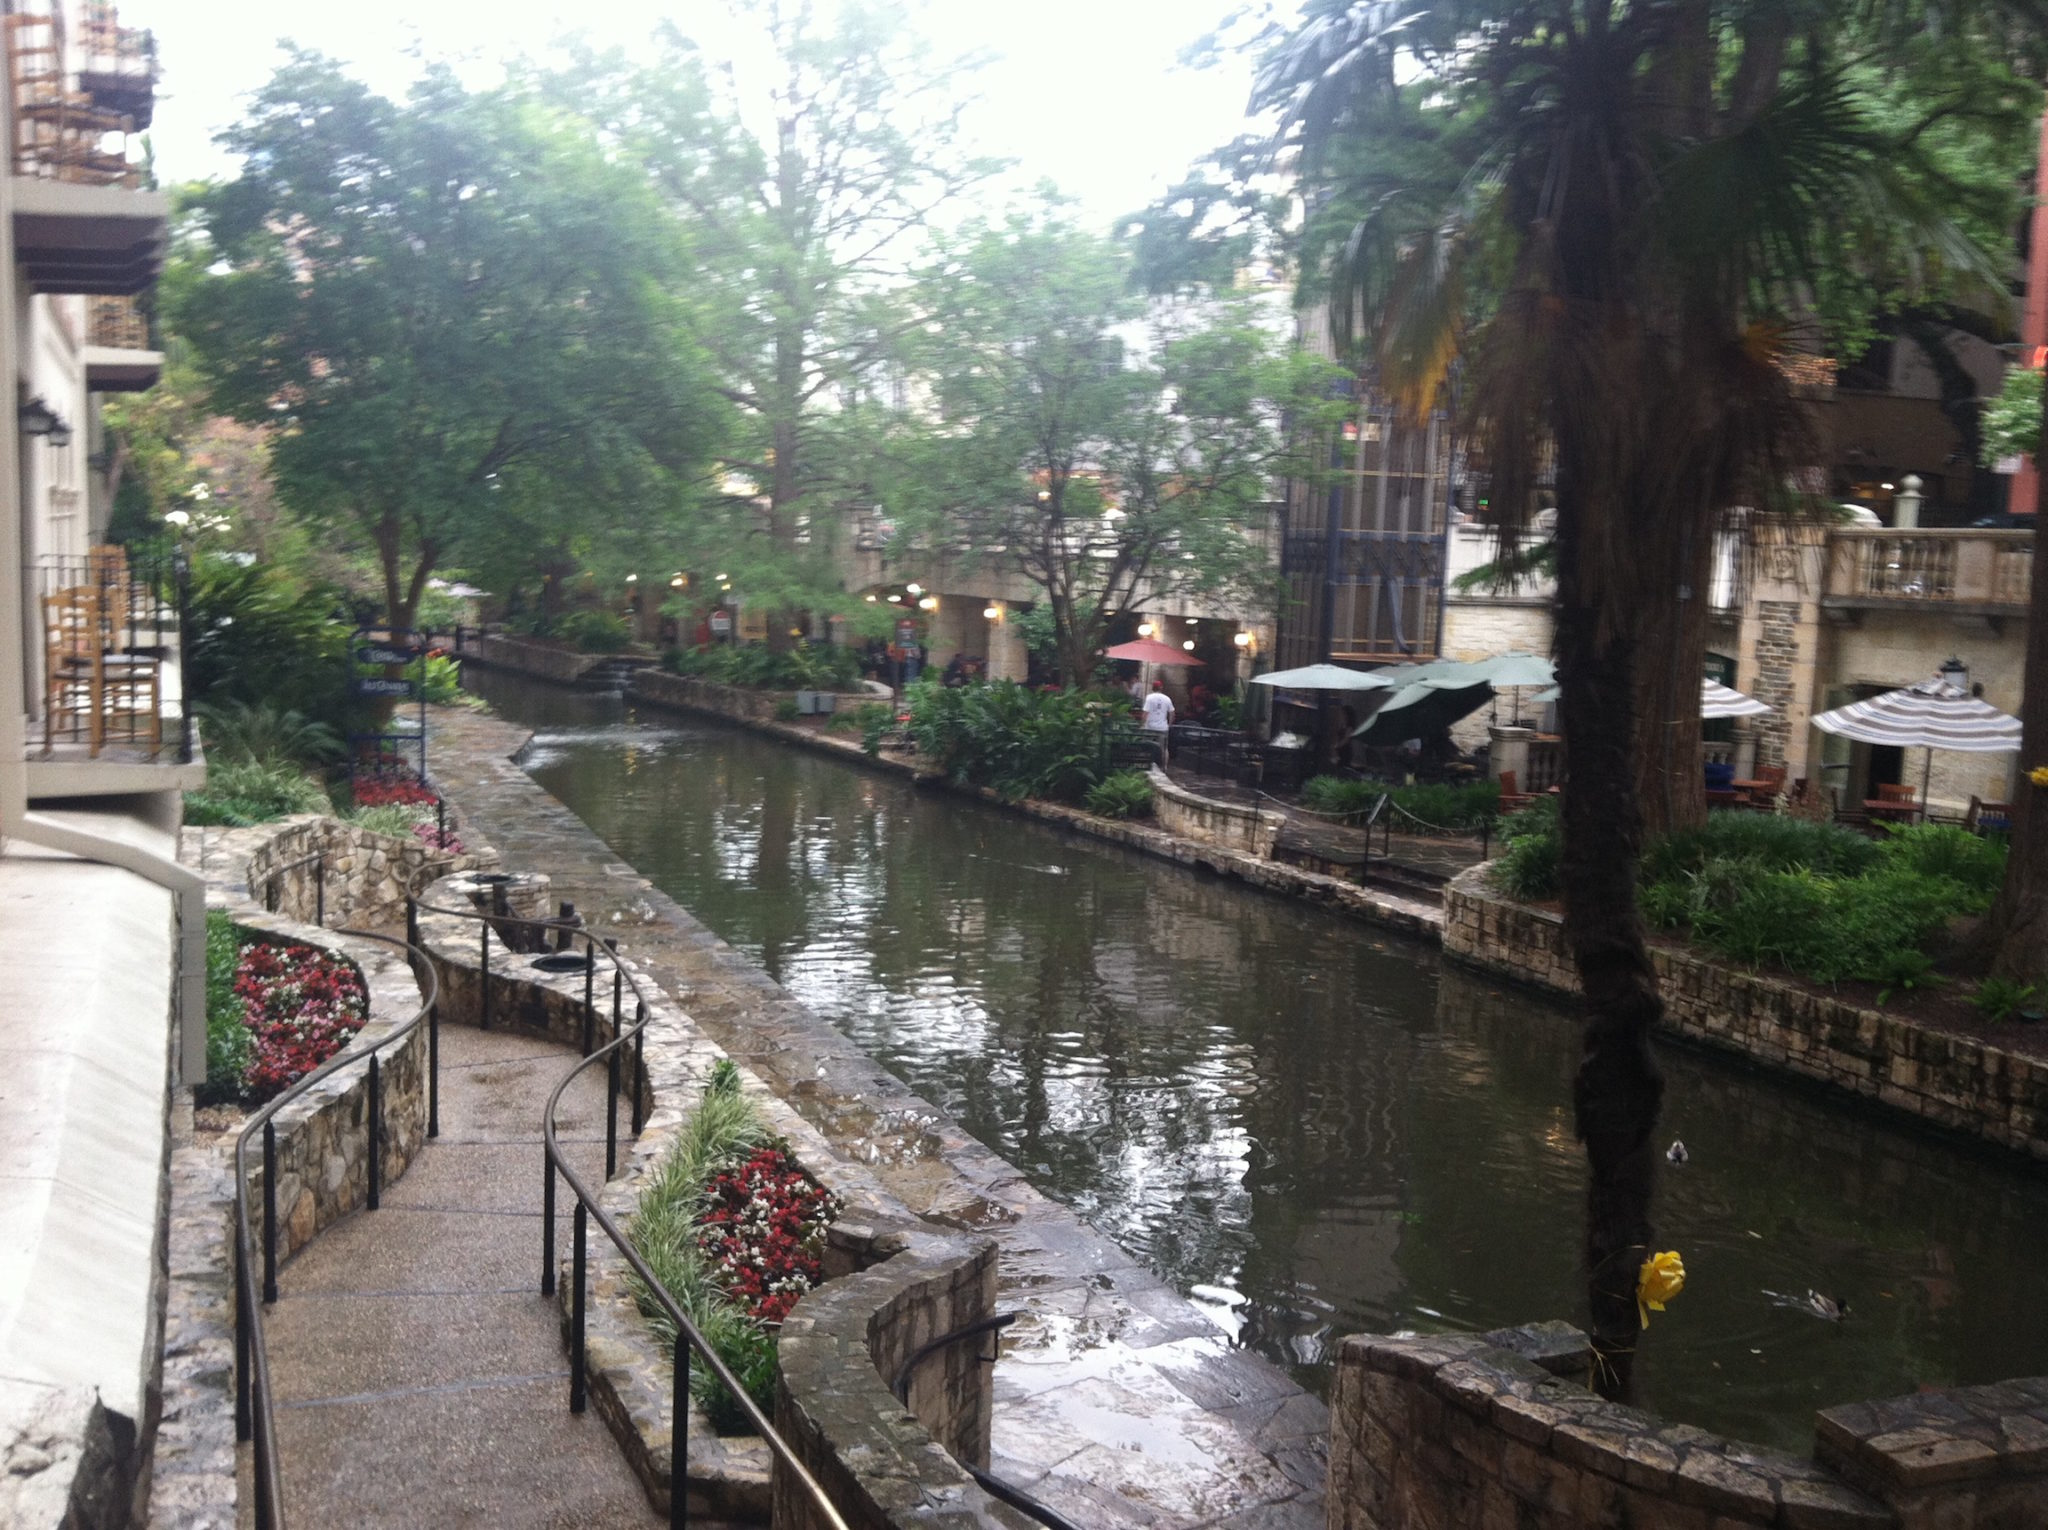 Luxury Hotel Review: Disney-esque Omni Shines on San Antonio Riverwalk